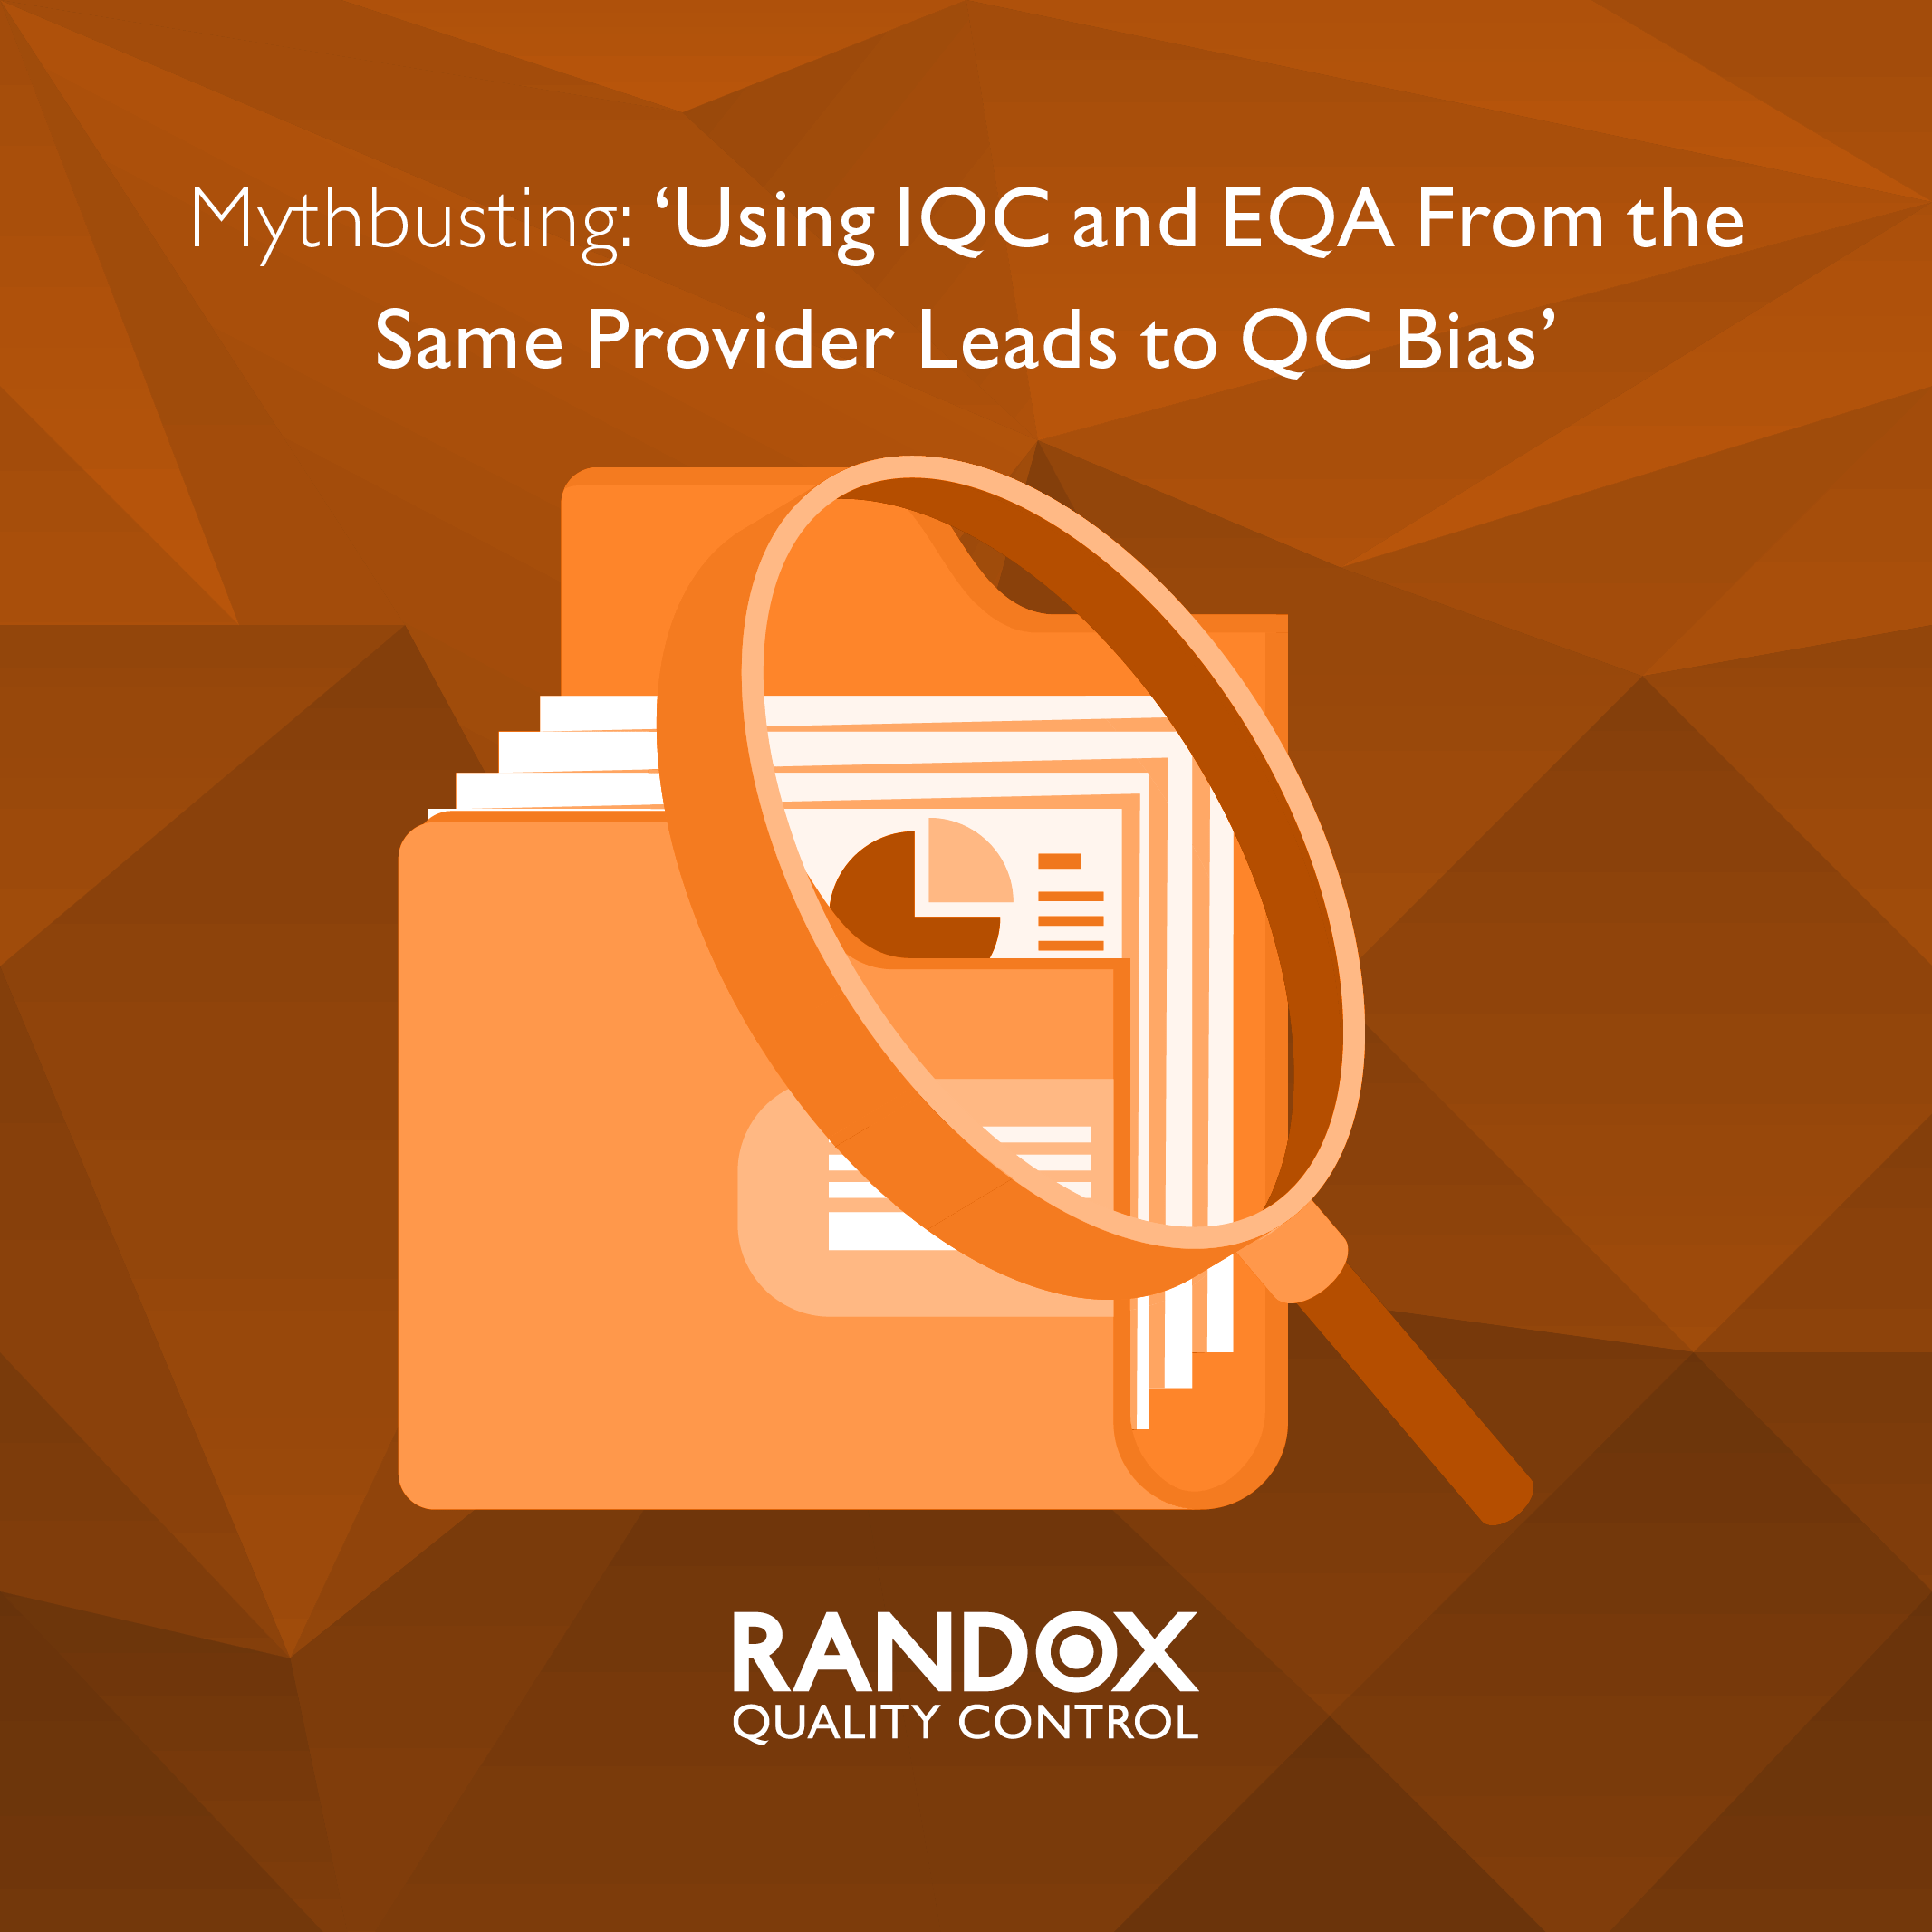 Mythbusting QC Bias